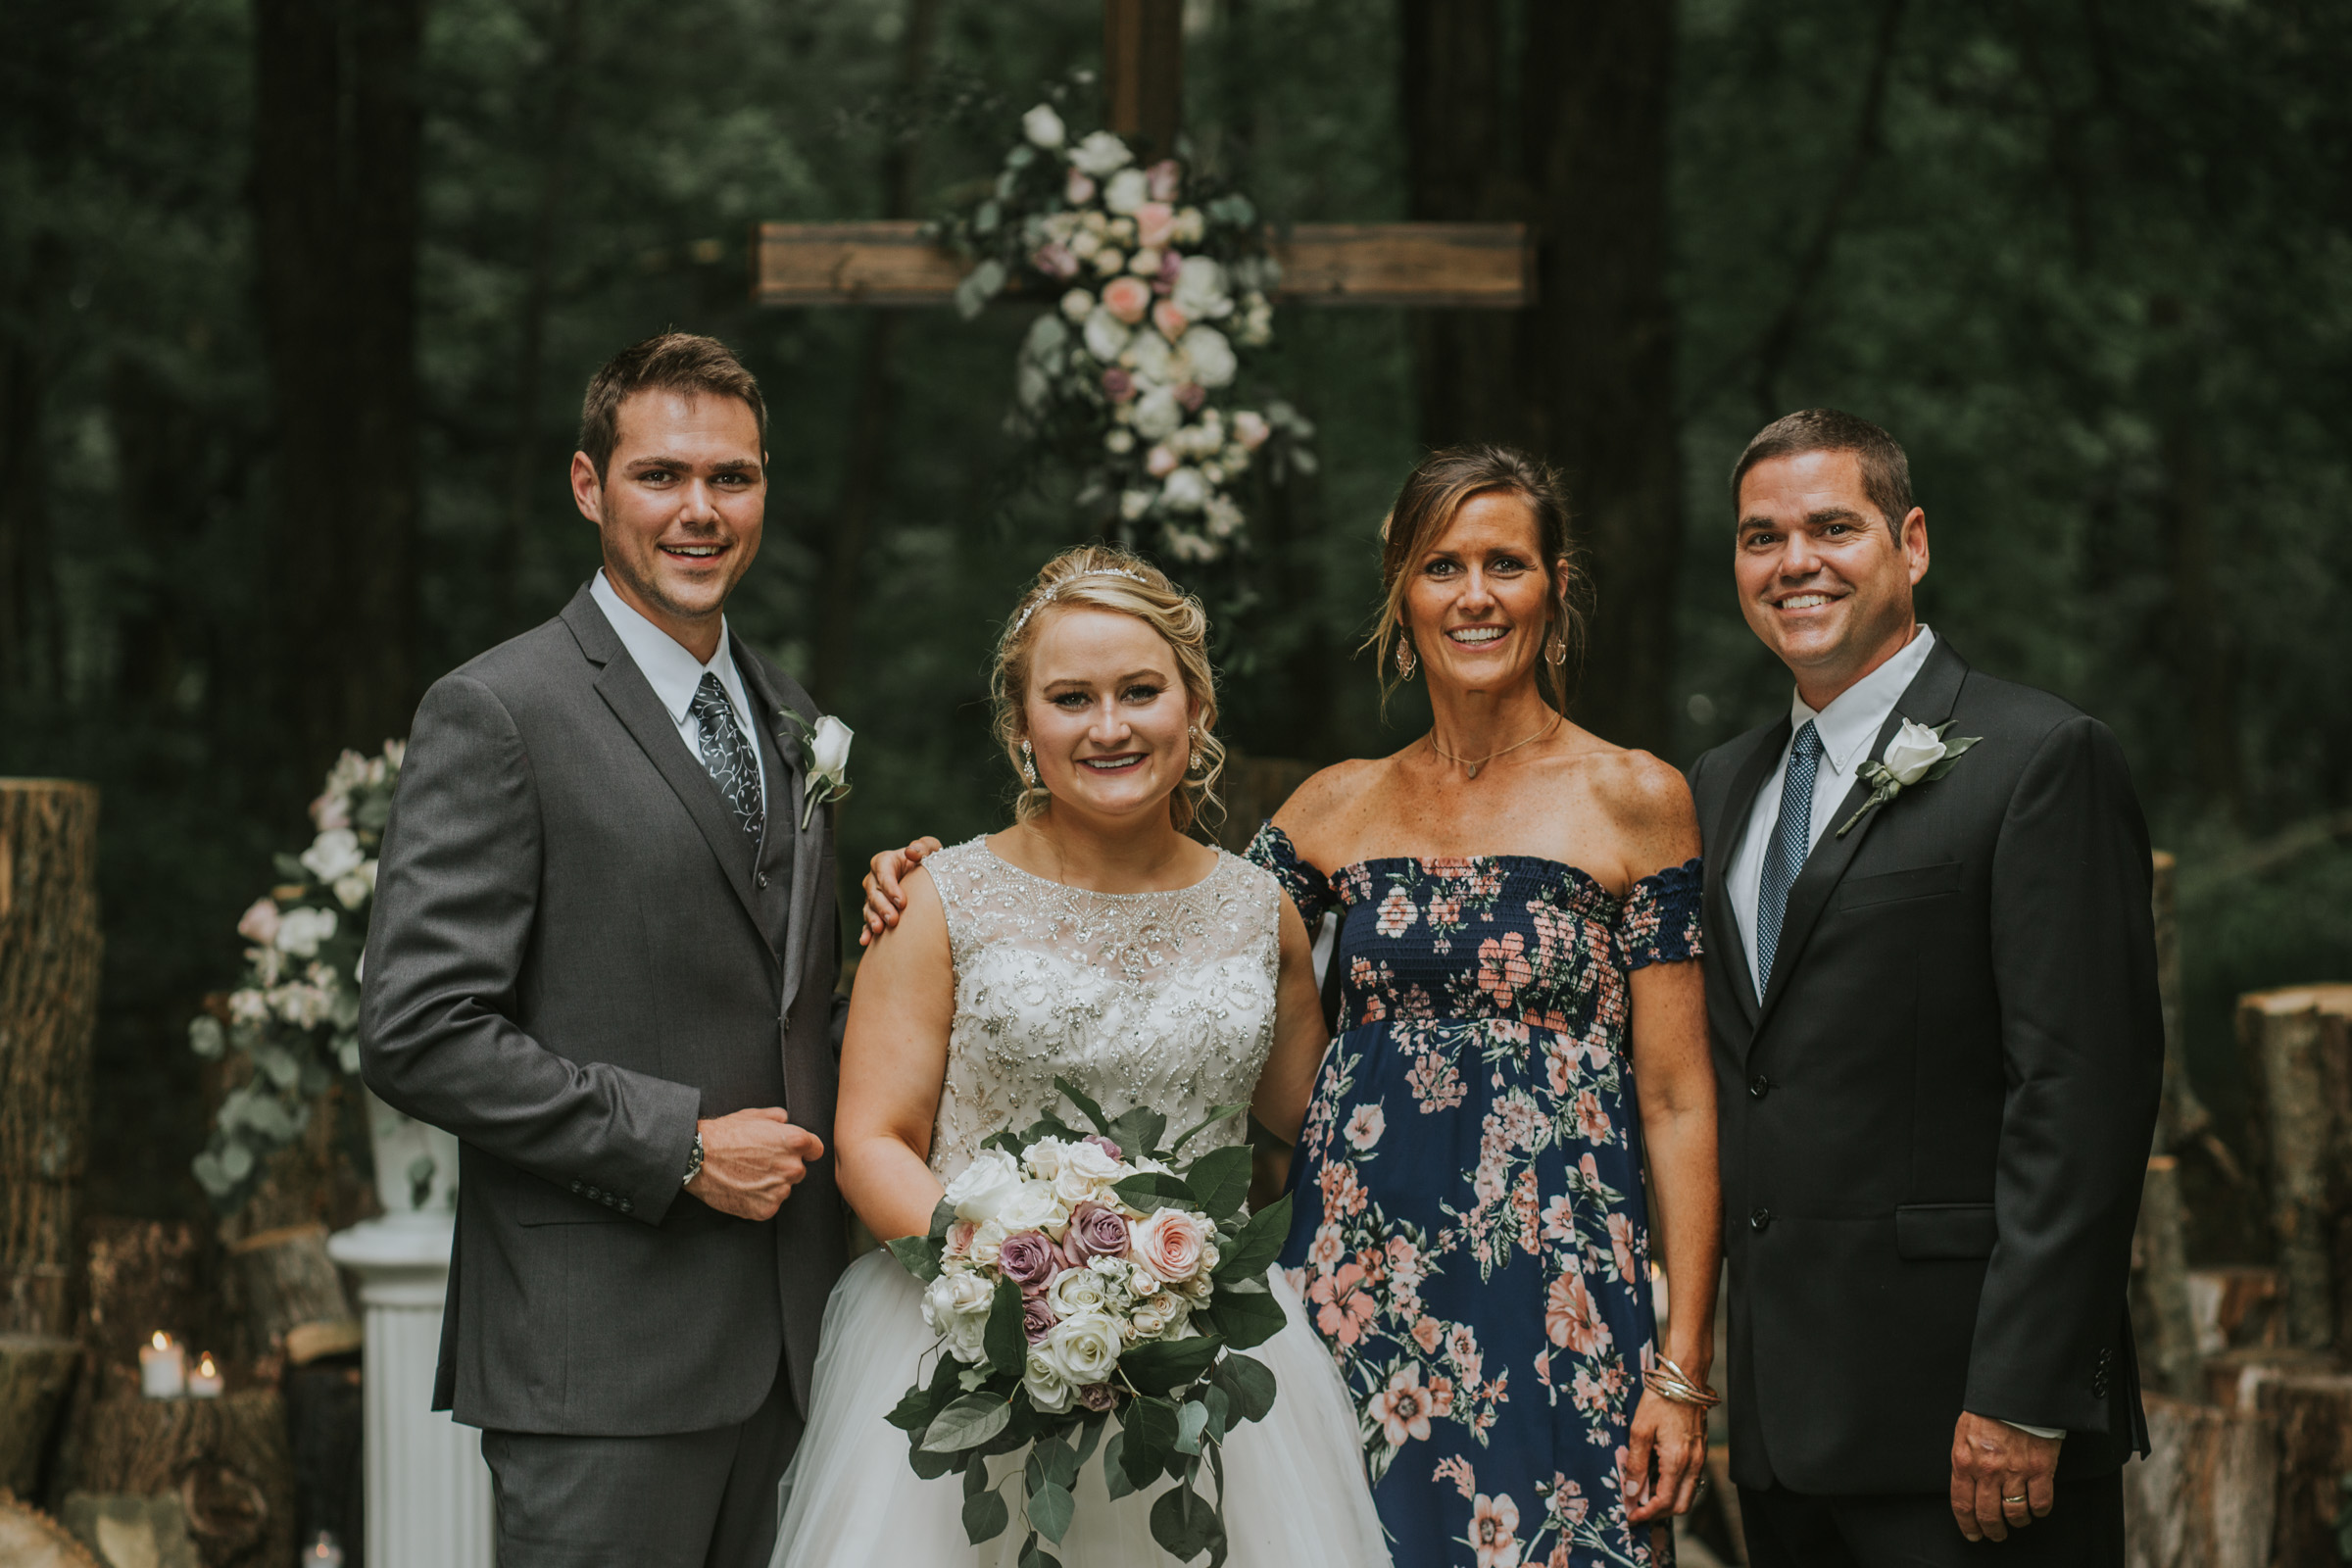 How to prepare for wedding day family portraits